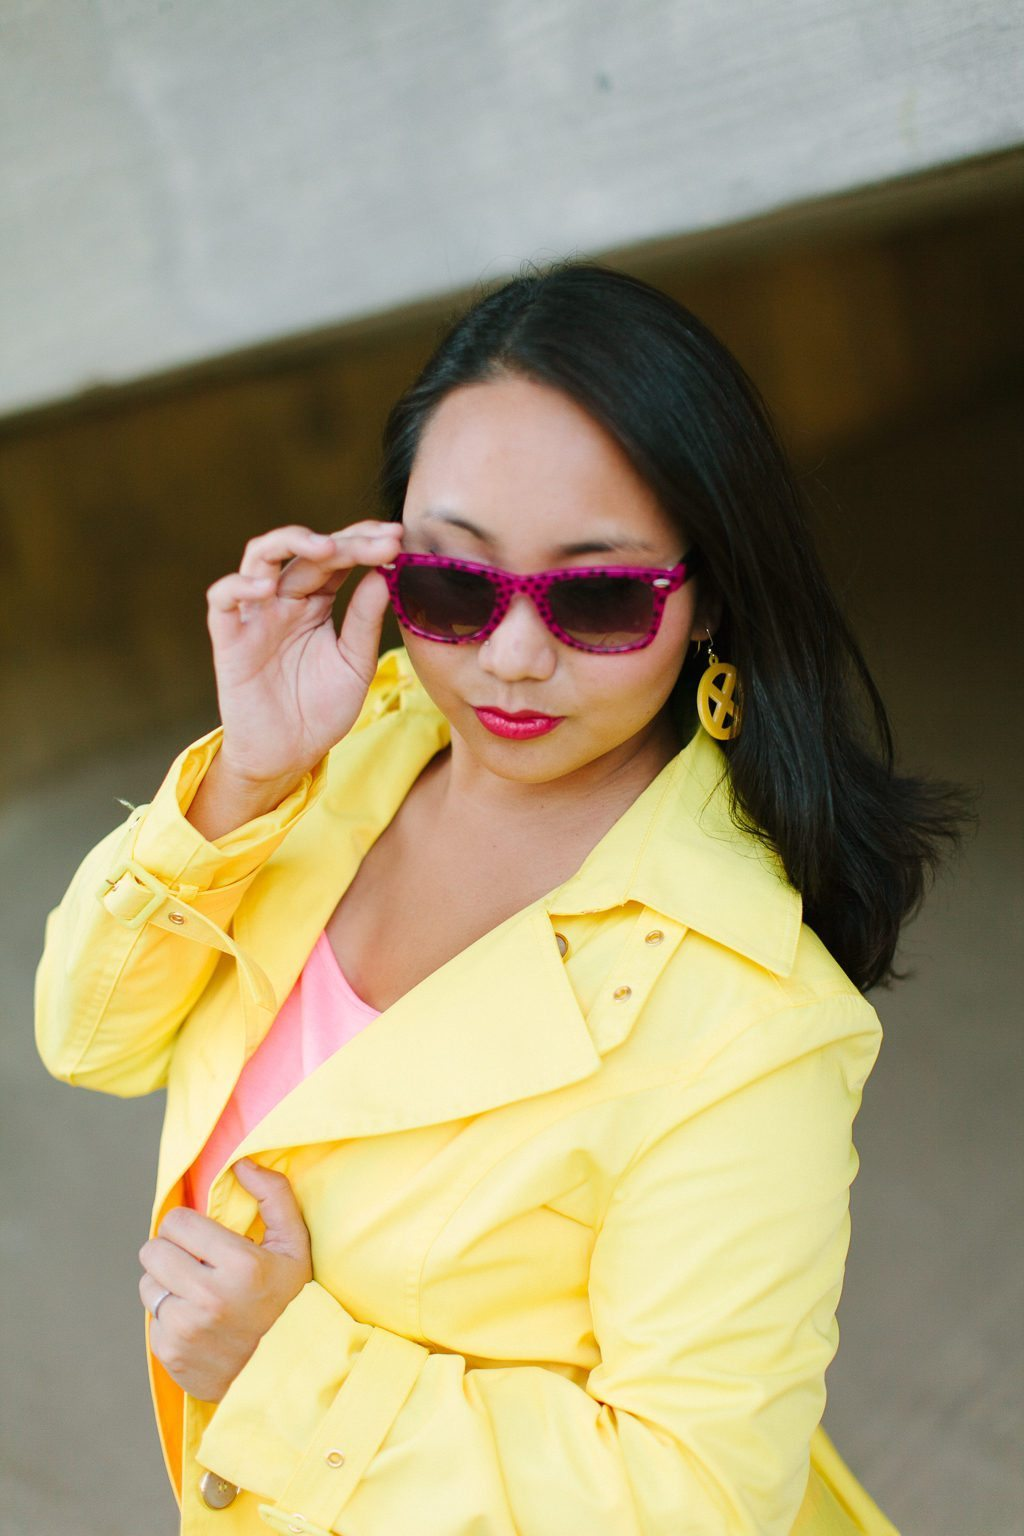 xmen-jubilee-cosplay-outfit-5671